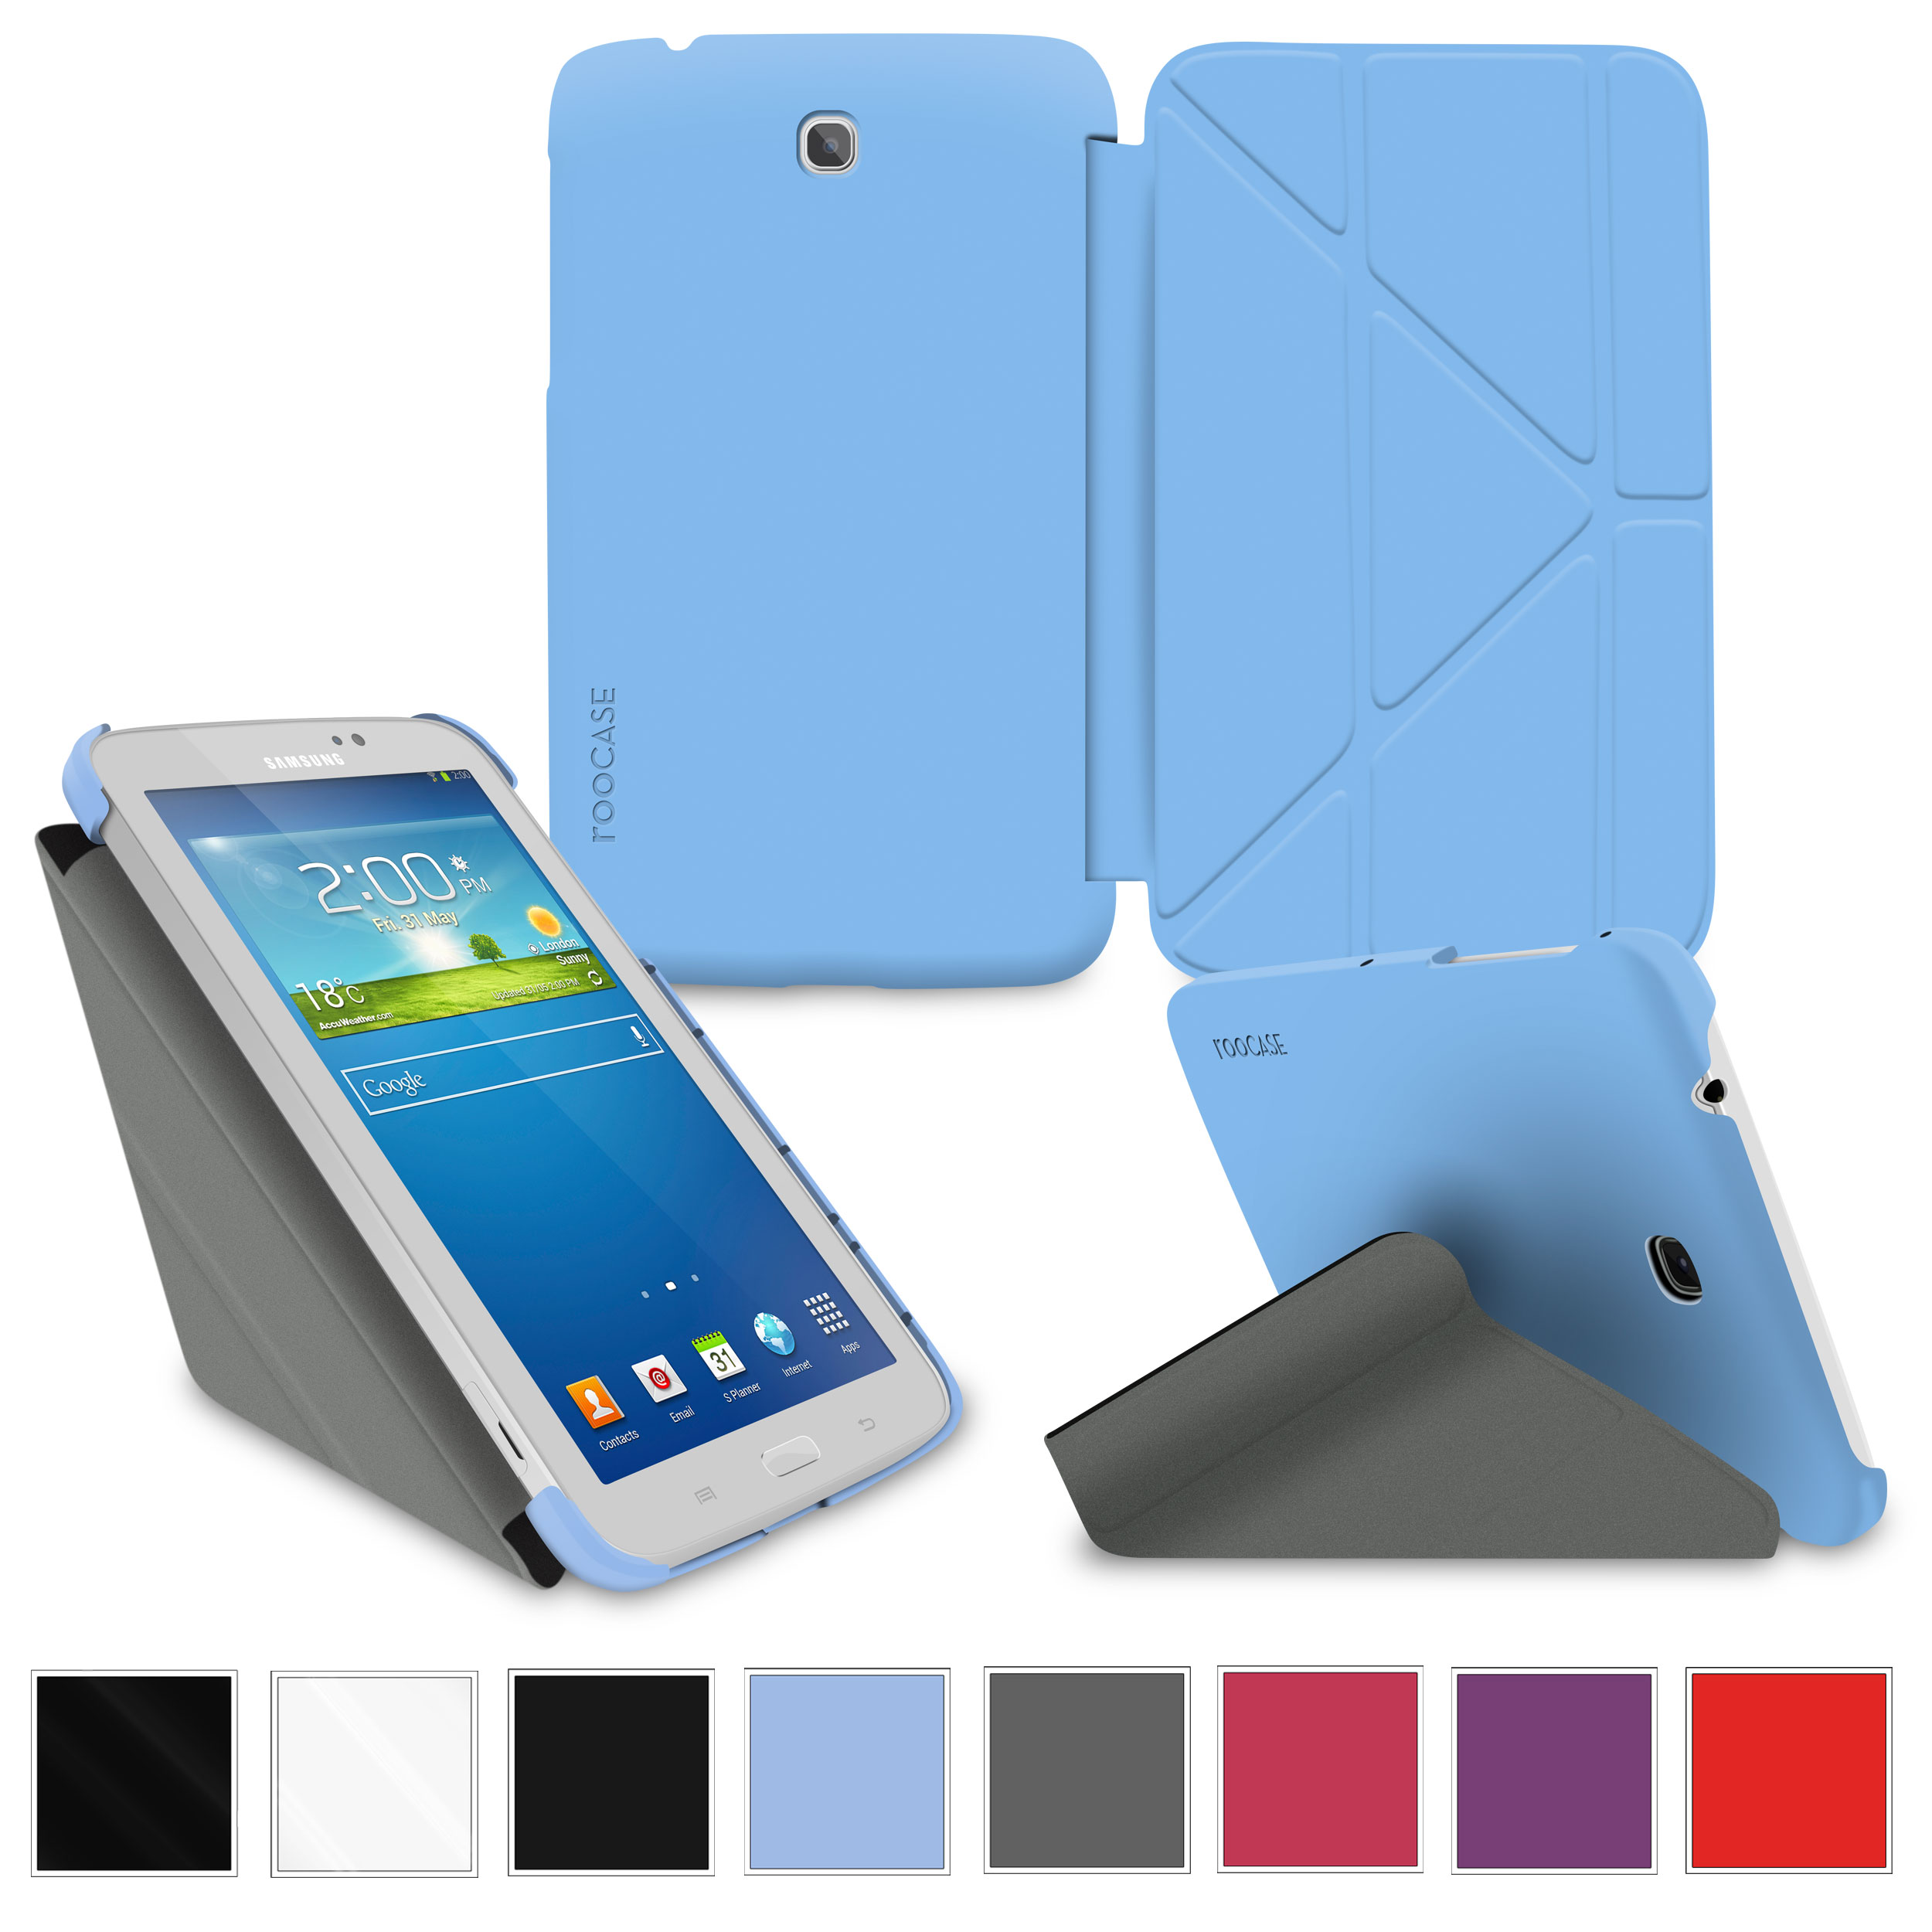 "rooCASE Samsung Galaxy Tab 3 7.0 Case - Slim Shell Origami Stand Tablet 7-Inch 7"" Cover with Landscape, Portrait, Typing Stand - BLUE"